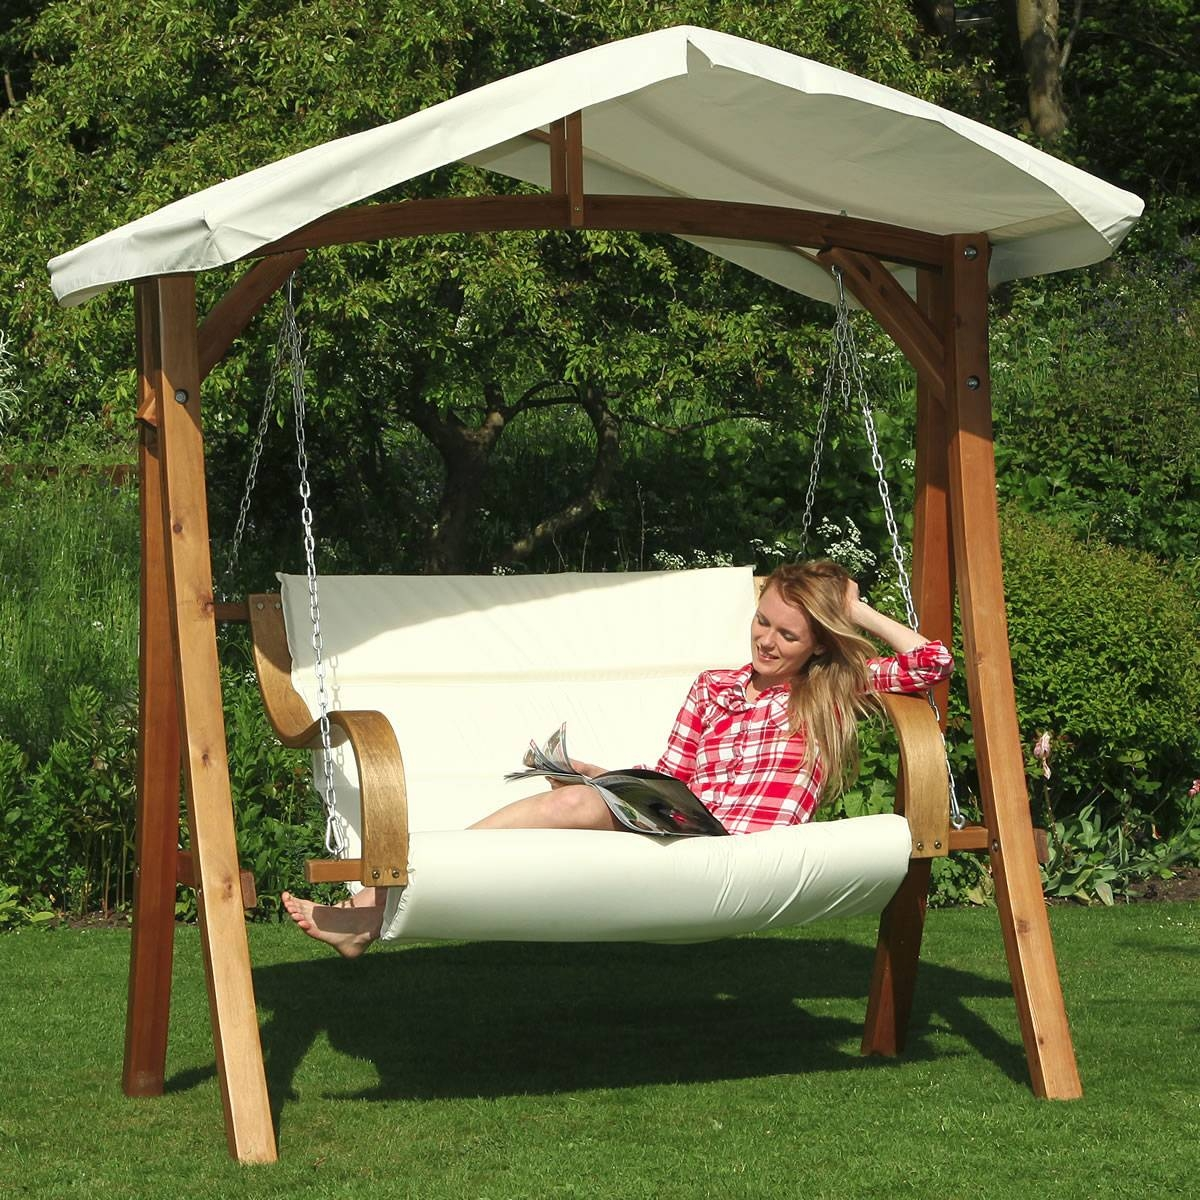 Patio Furniture Swing With Canopy Enebh - Cnxconsortium with regard to Outdoor Sofas With Canopy (Image 27 of 30)